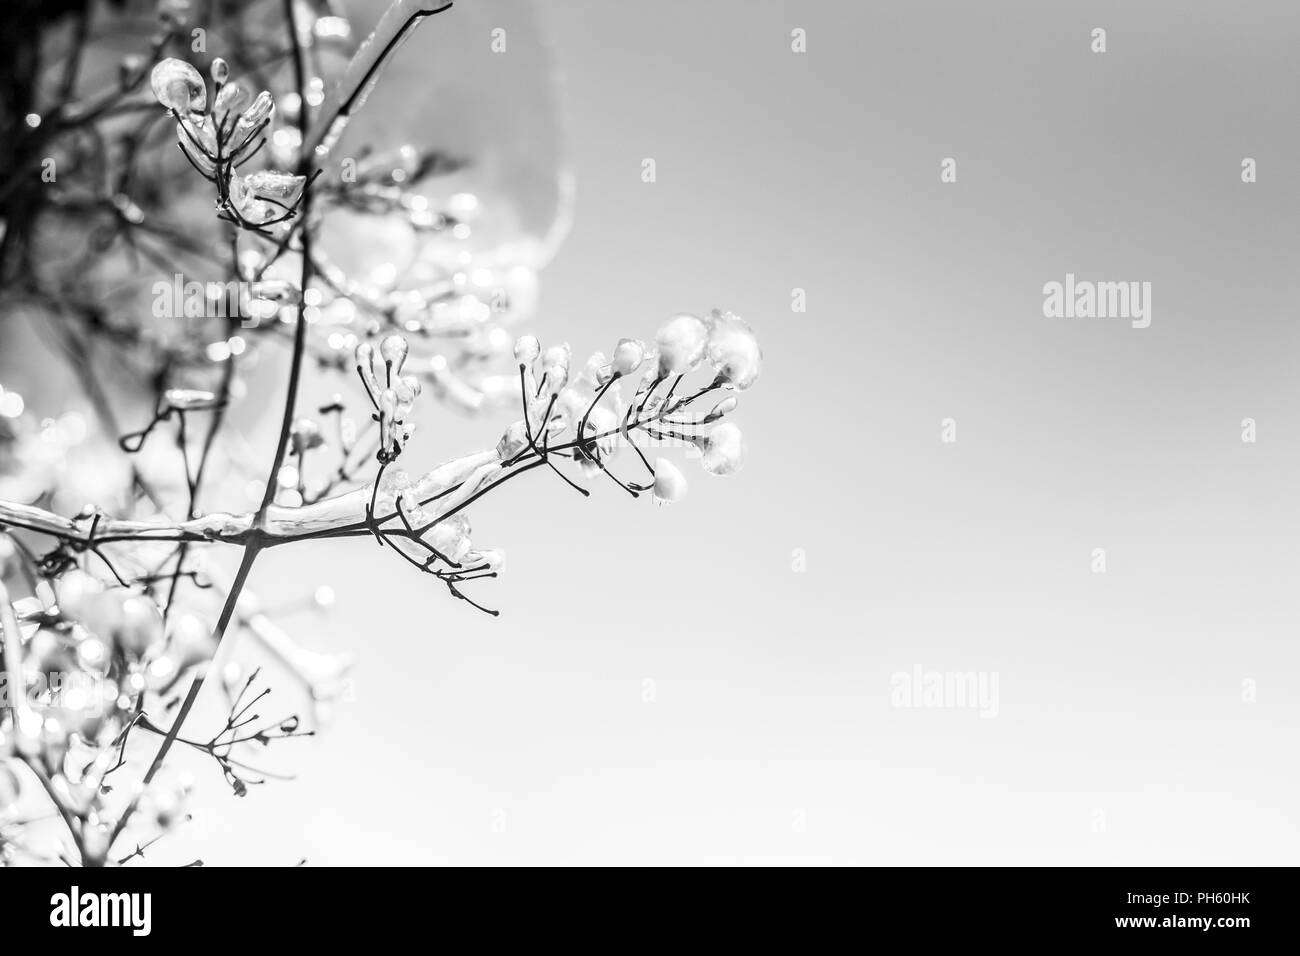 Frozen branches of trees in sunny day. Natural, winter background - Stock Image